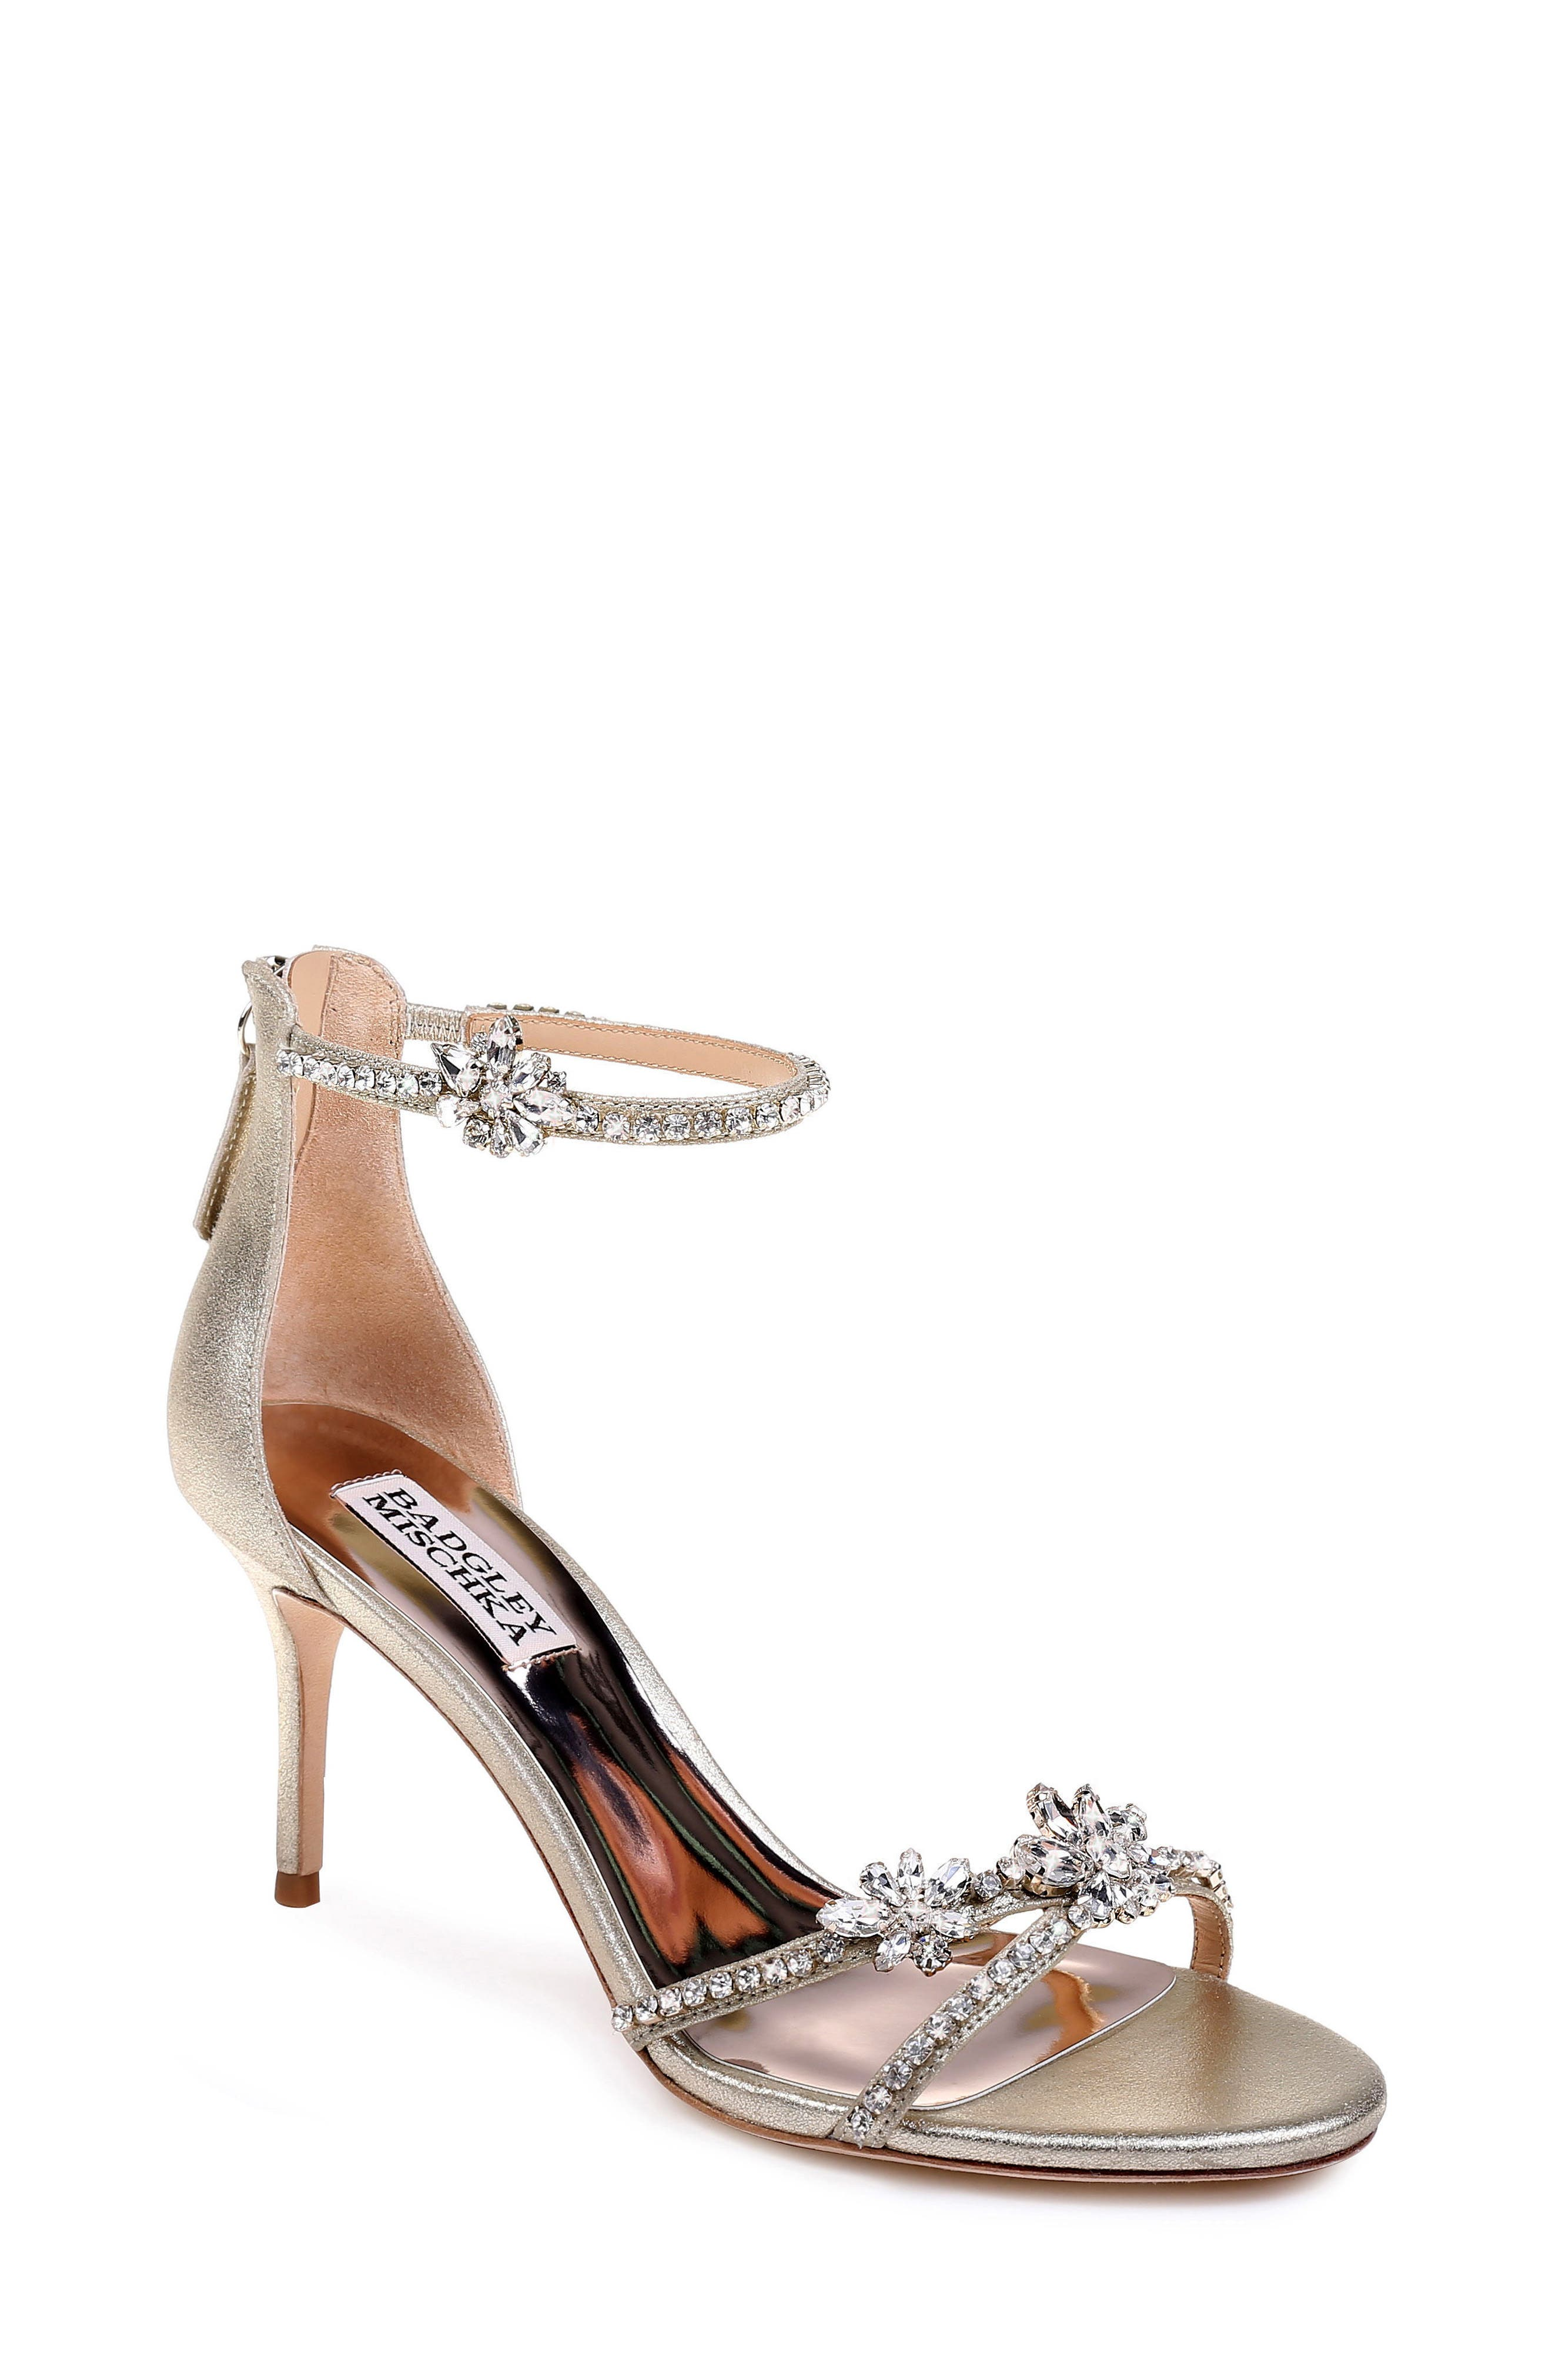 BADGLEY MISCHKA COLLECTION,                             Badgley Mischka Hobbs Ankle Strap Sandal,                             Main thumbnail 1, color,                             040